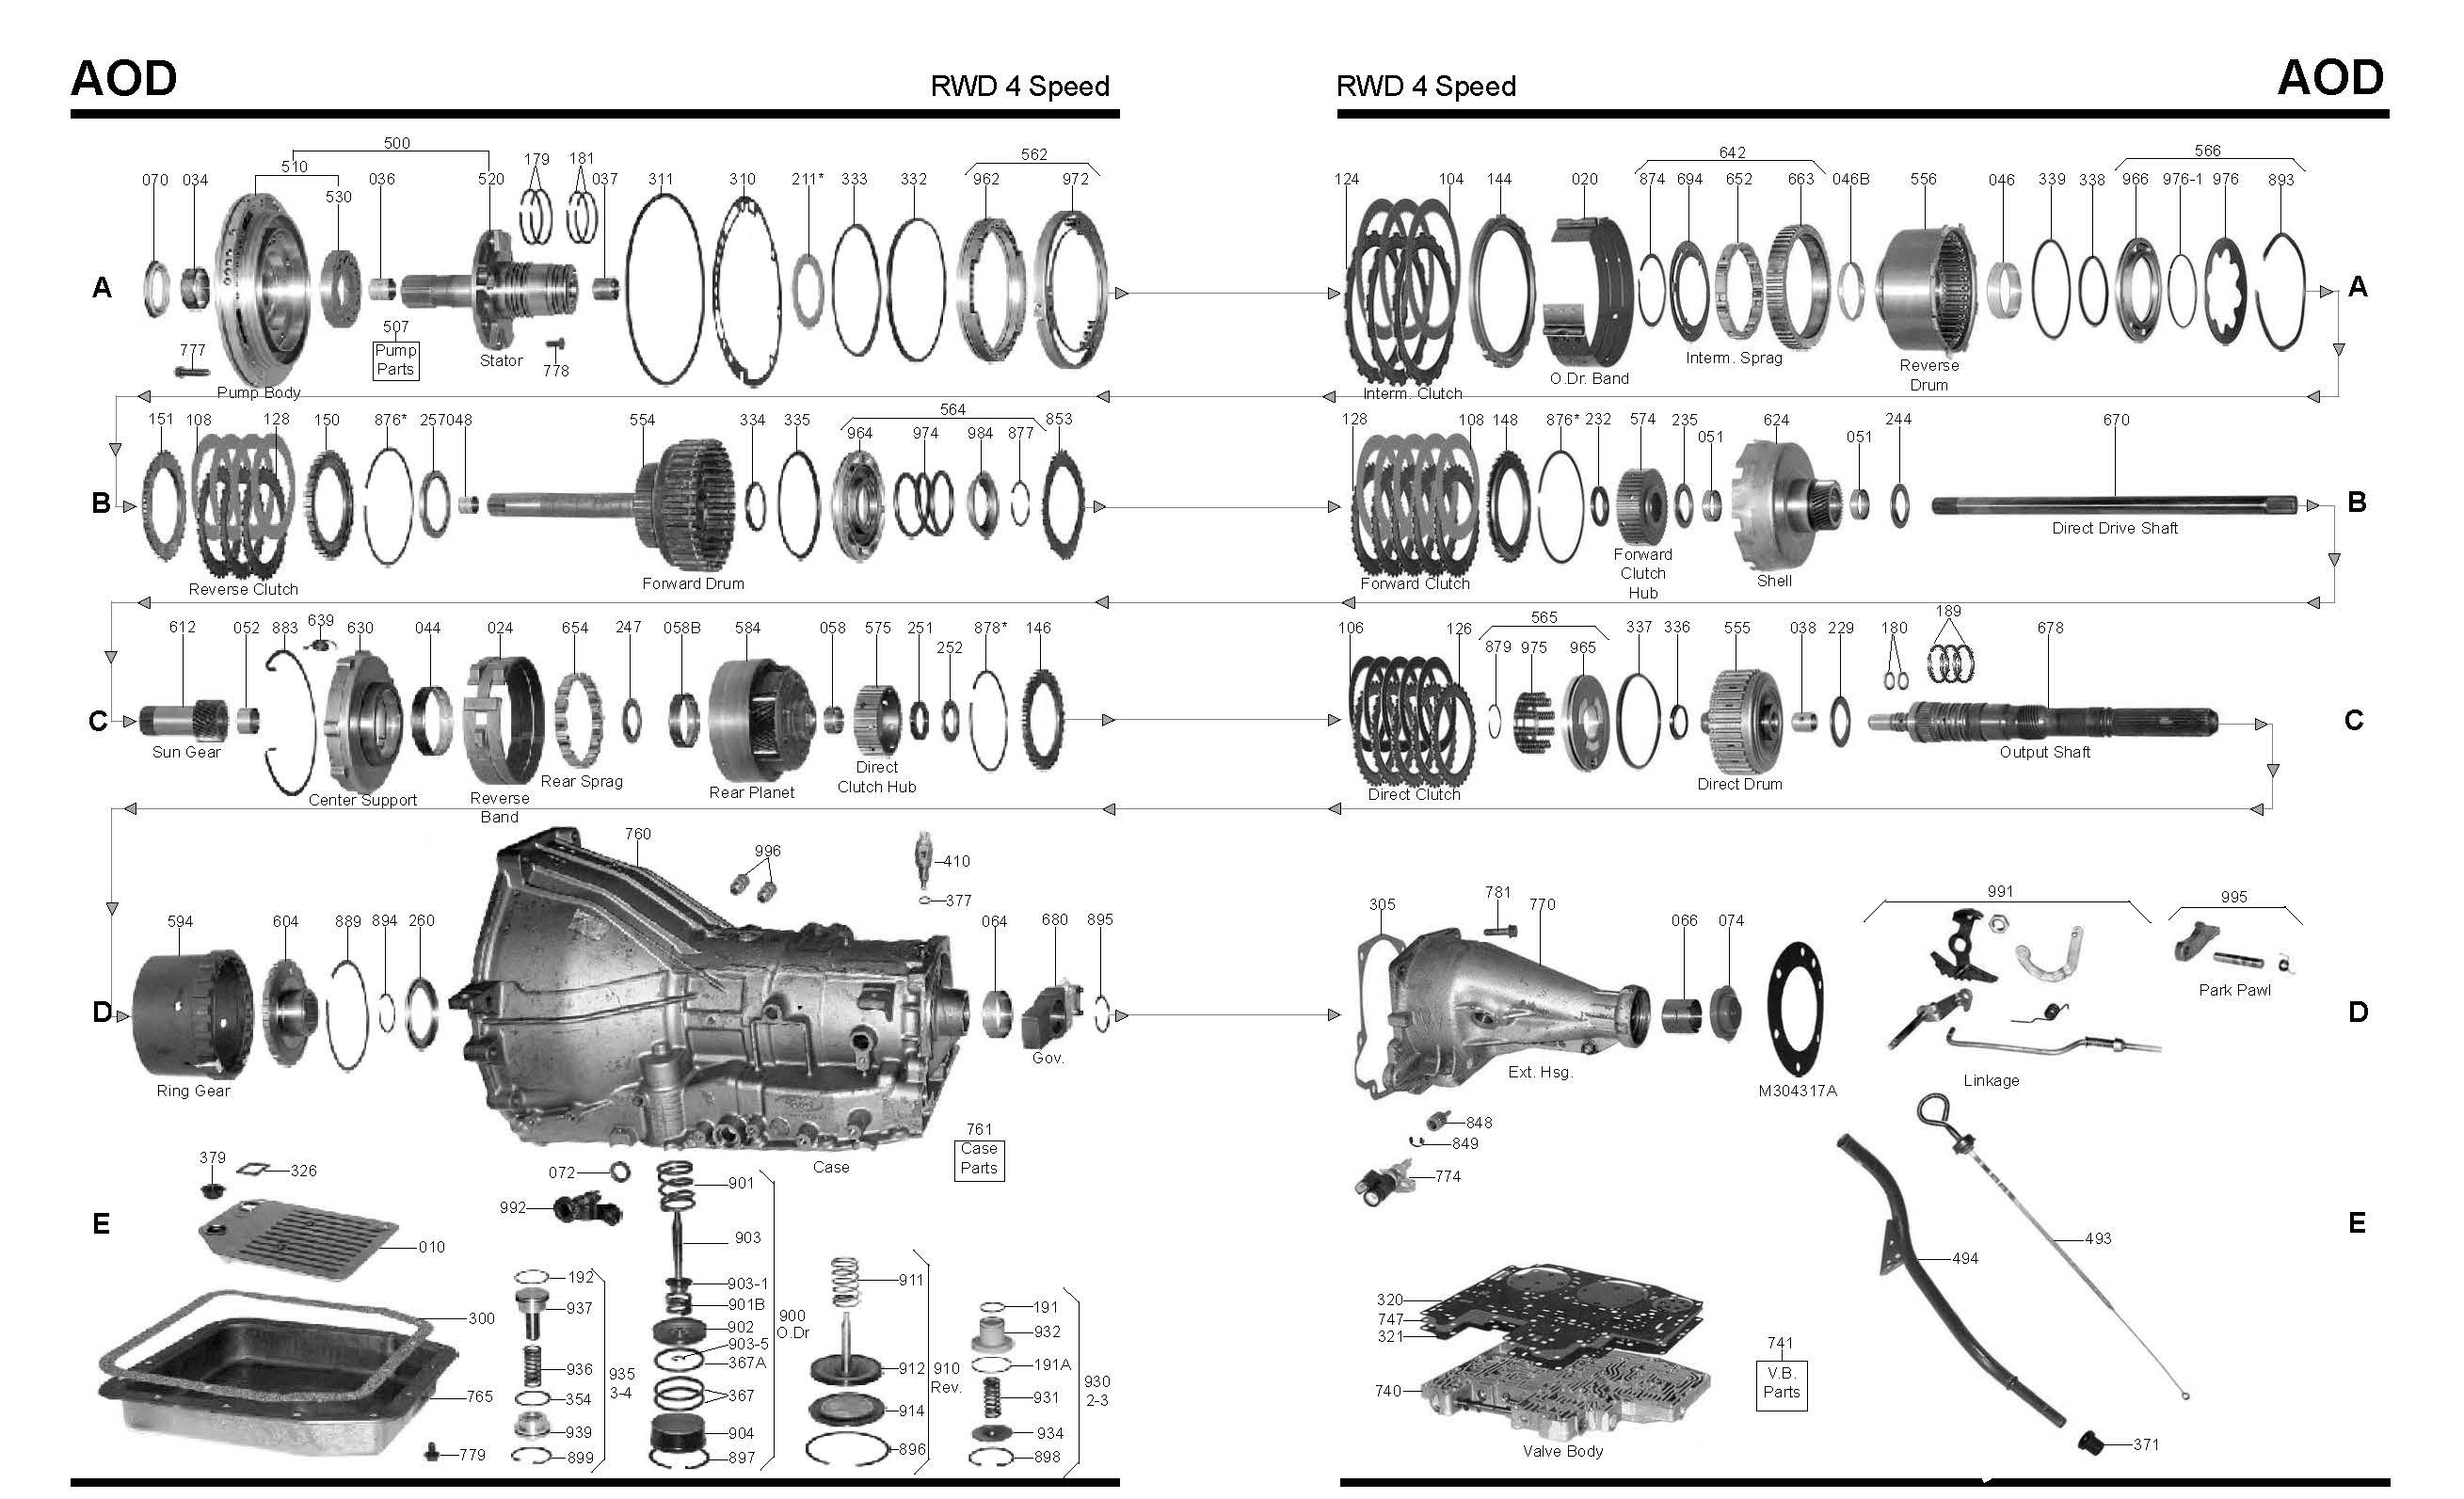 4l60e Transmission Parts Diagram ford Aod Transmission Master Rebuild Kit From Alto Stage 3 1980 1990 Of 4l60e Transmission Parts Diagram